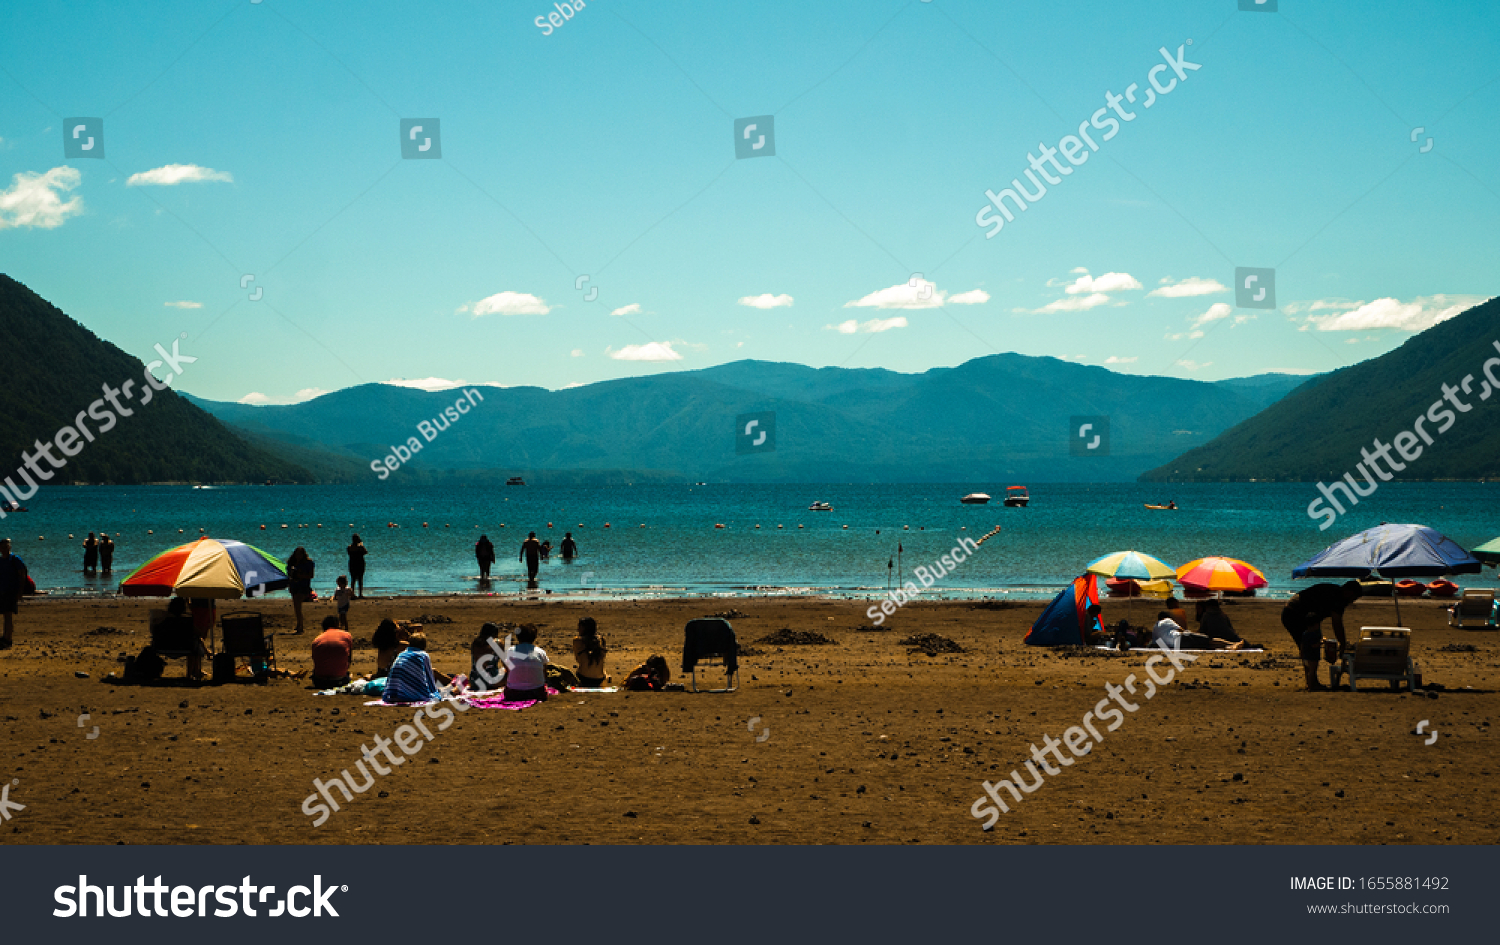 stock-photo-pucon-chile-february-people-